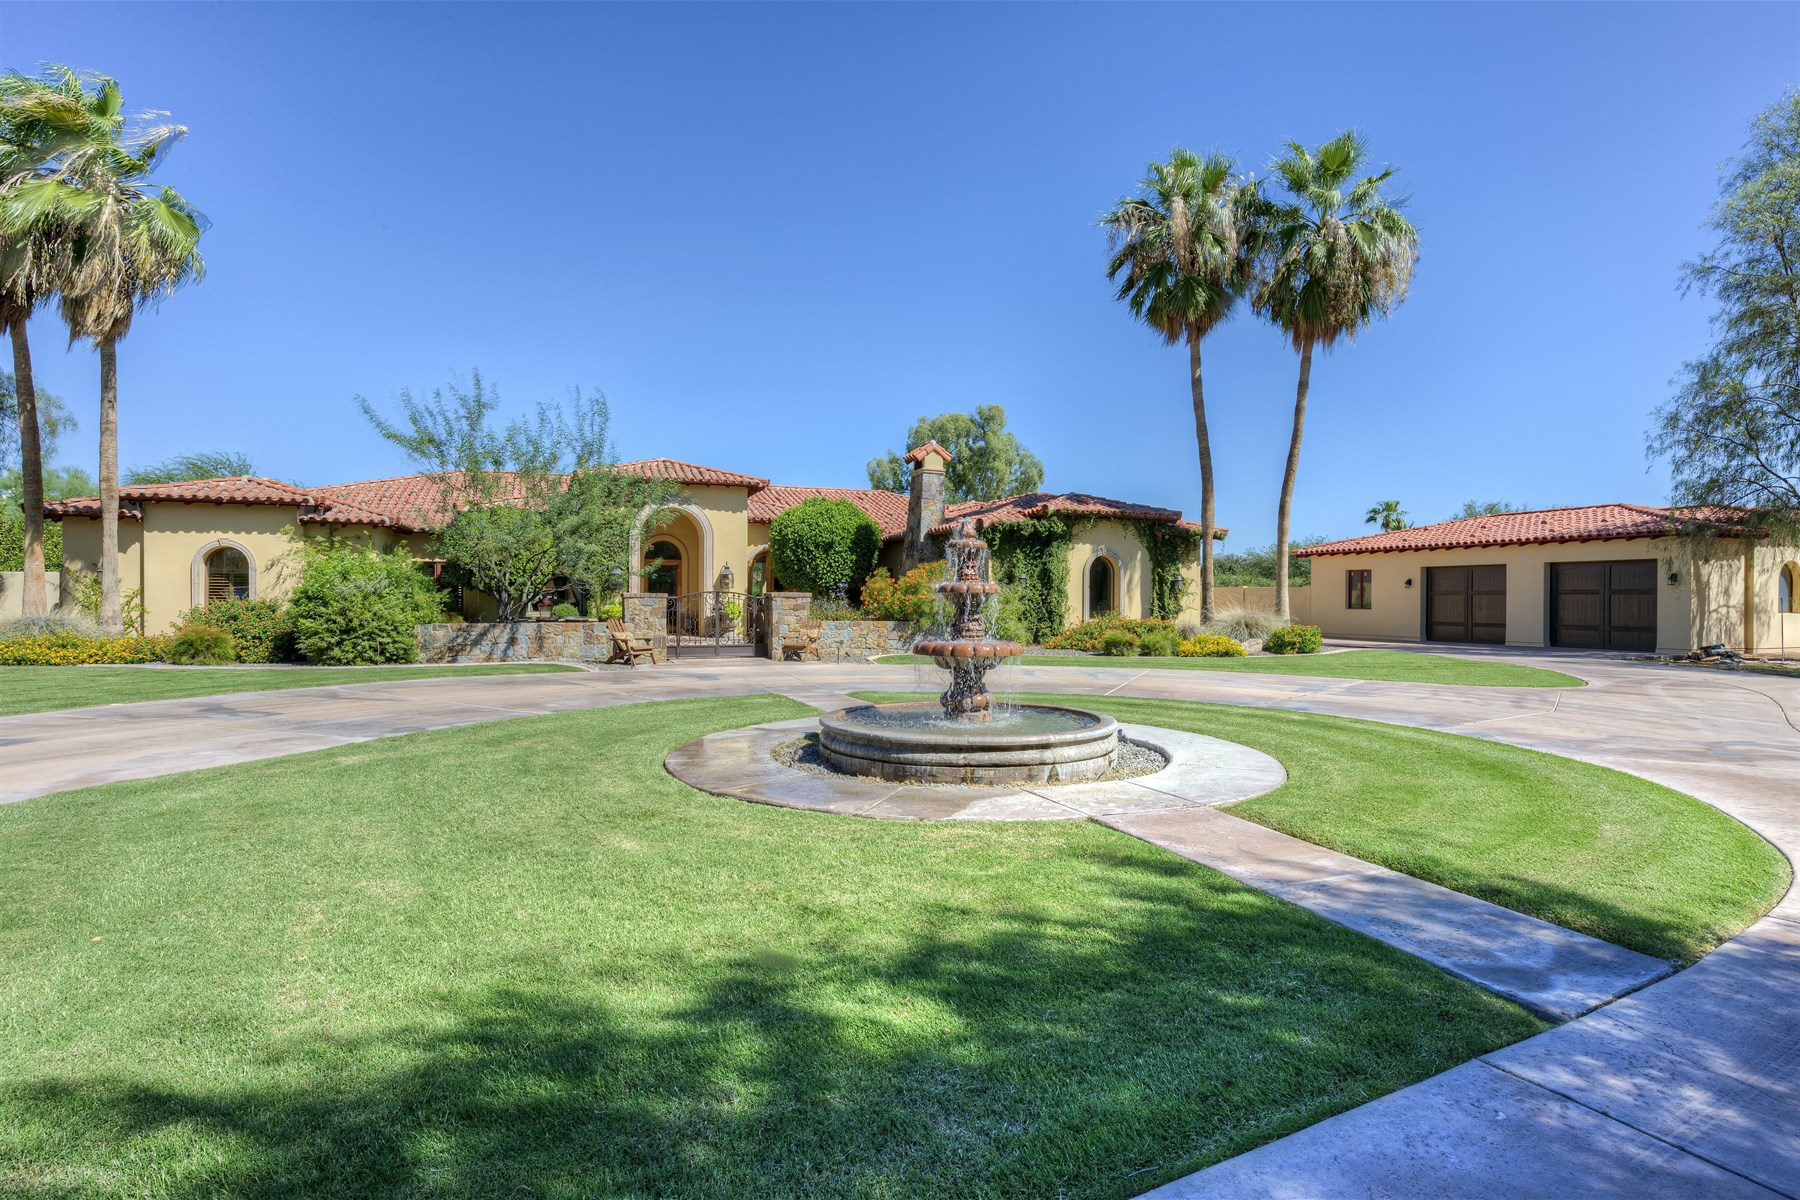 rentals property at Beautiful home with a gated driveway leading to a private cul-de-sac